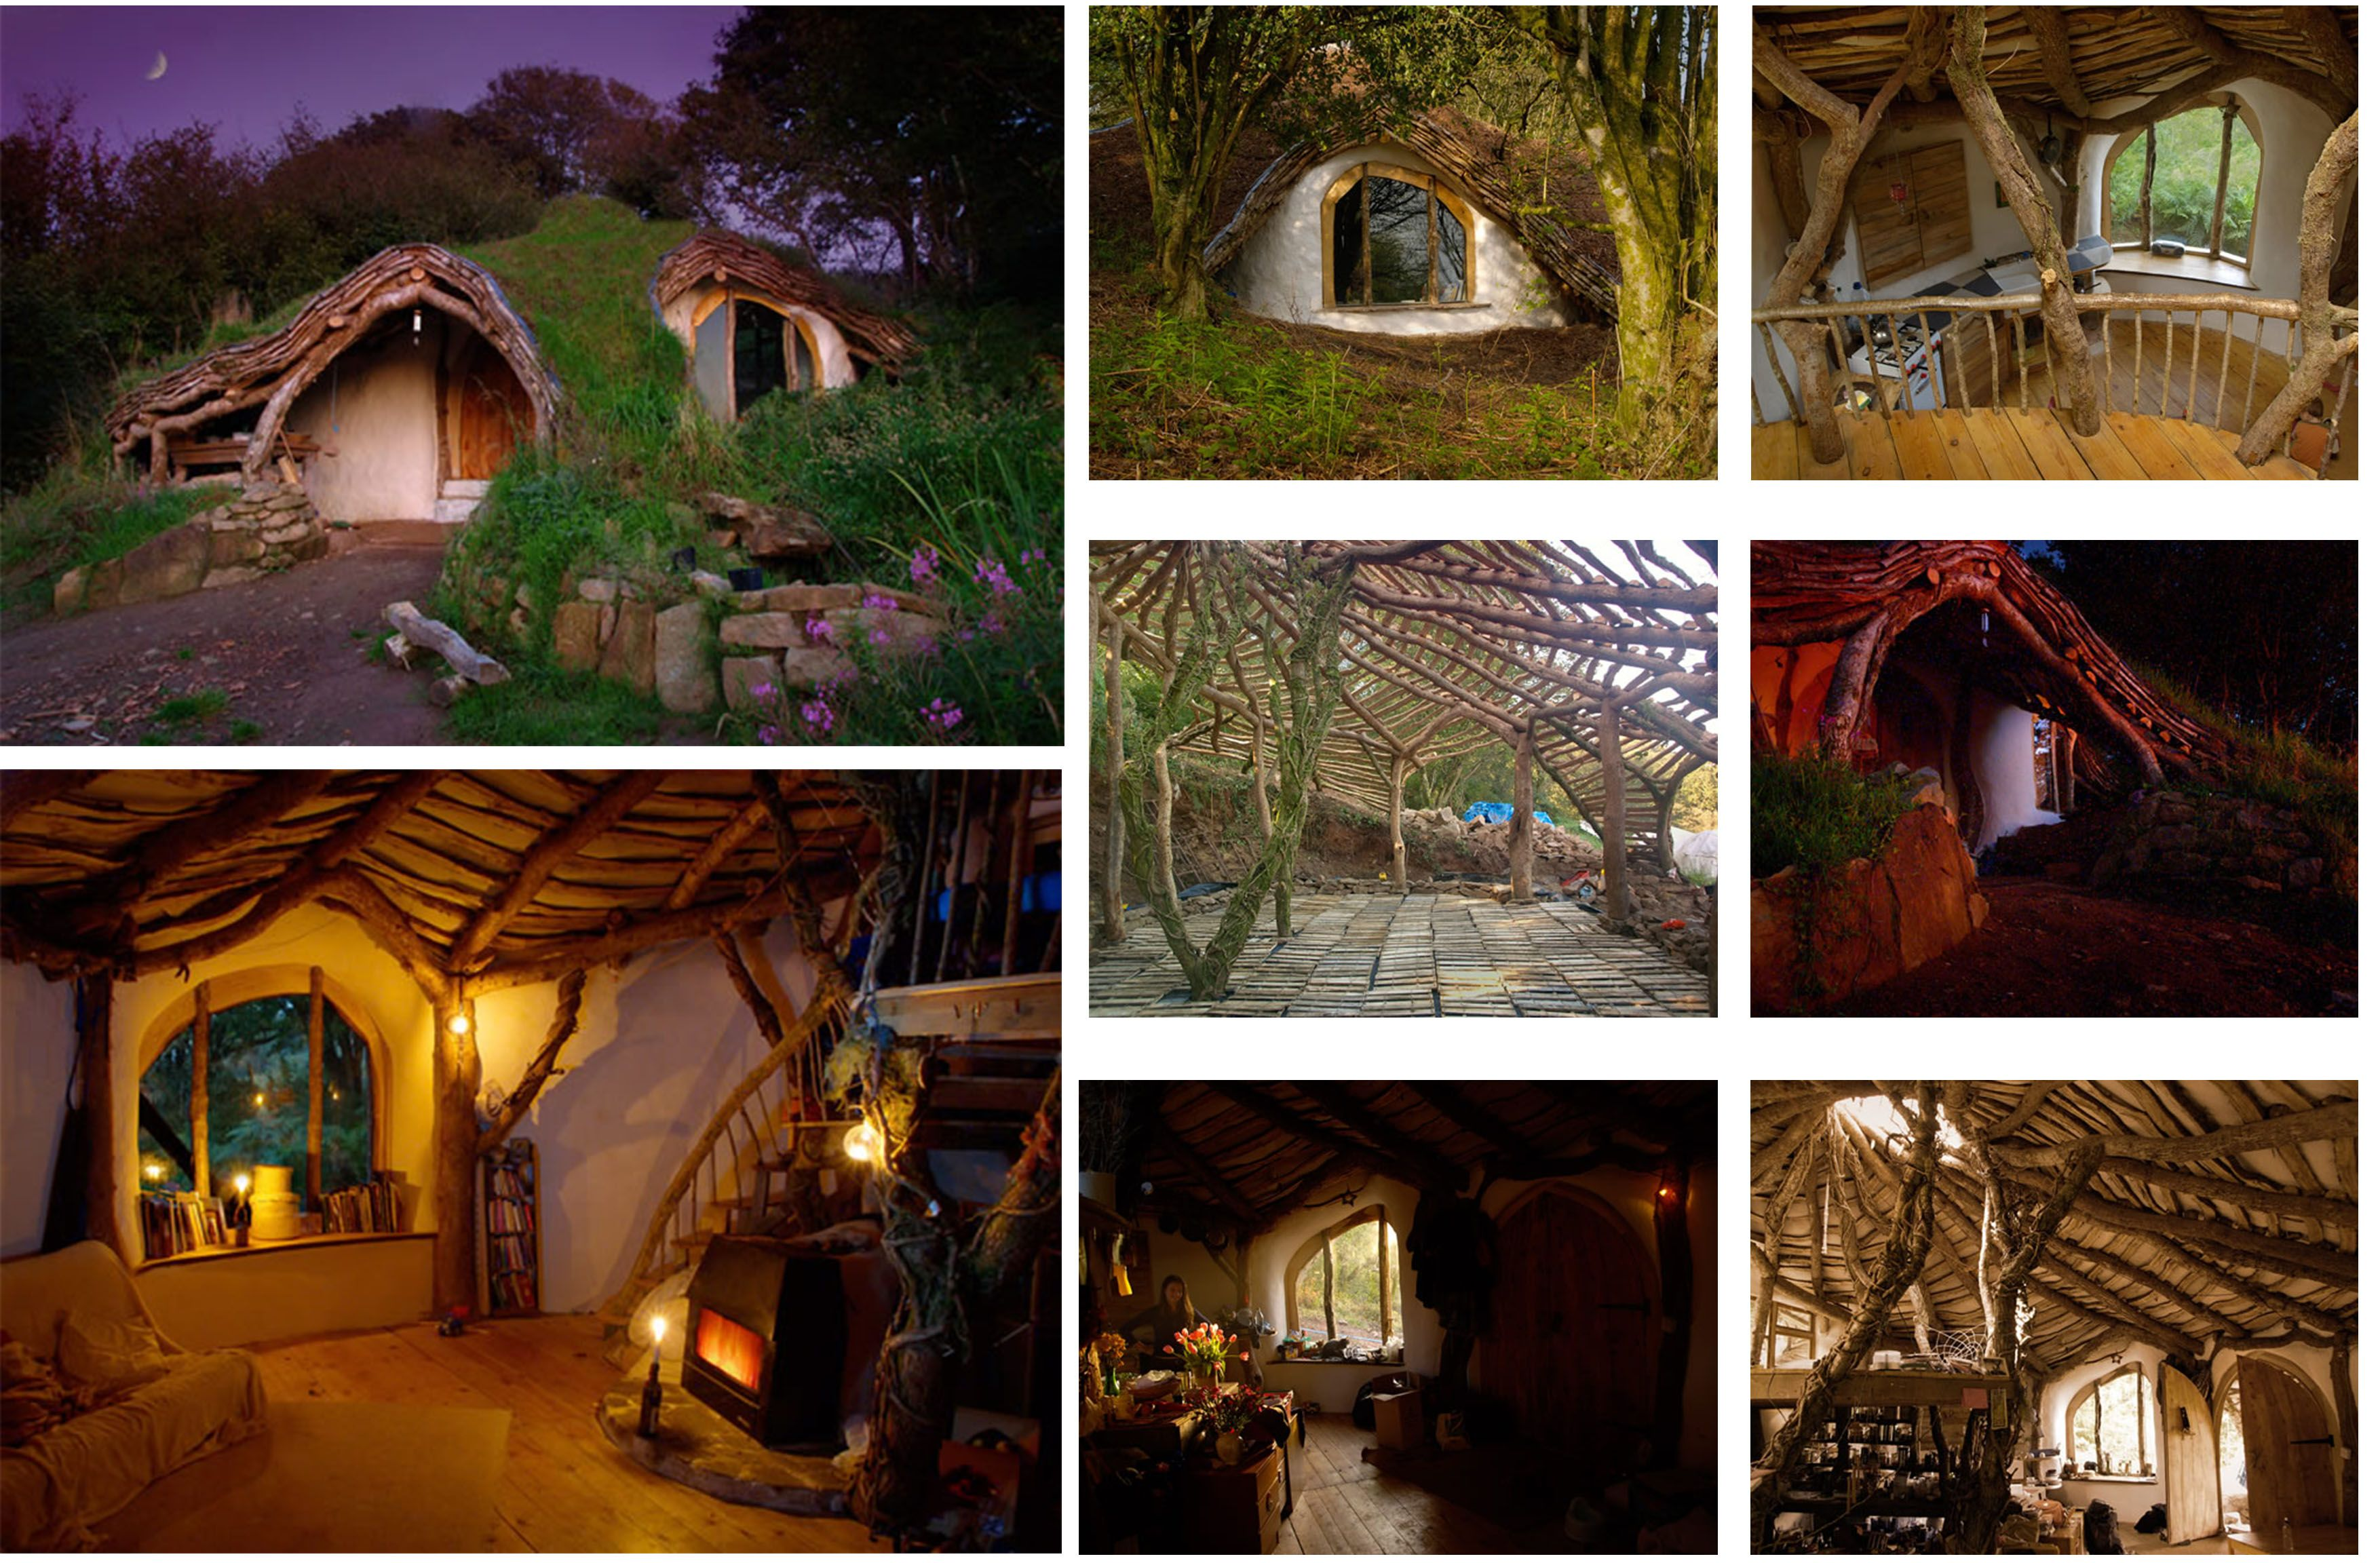 Off the grid living real hobbit house aspirations dreams goals pinterest - Off grid hobbit house ...